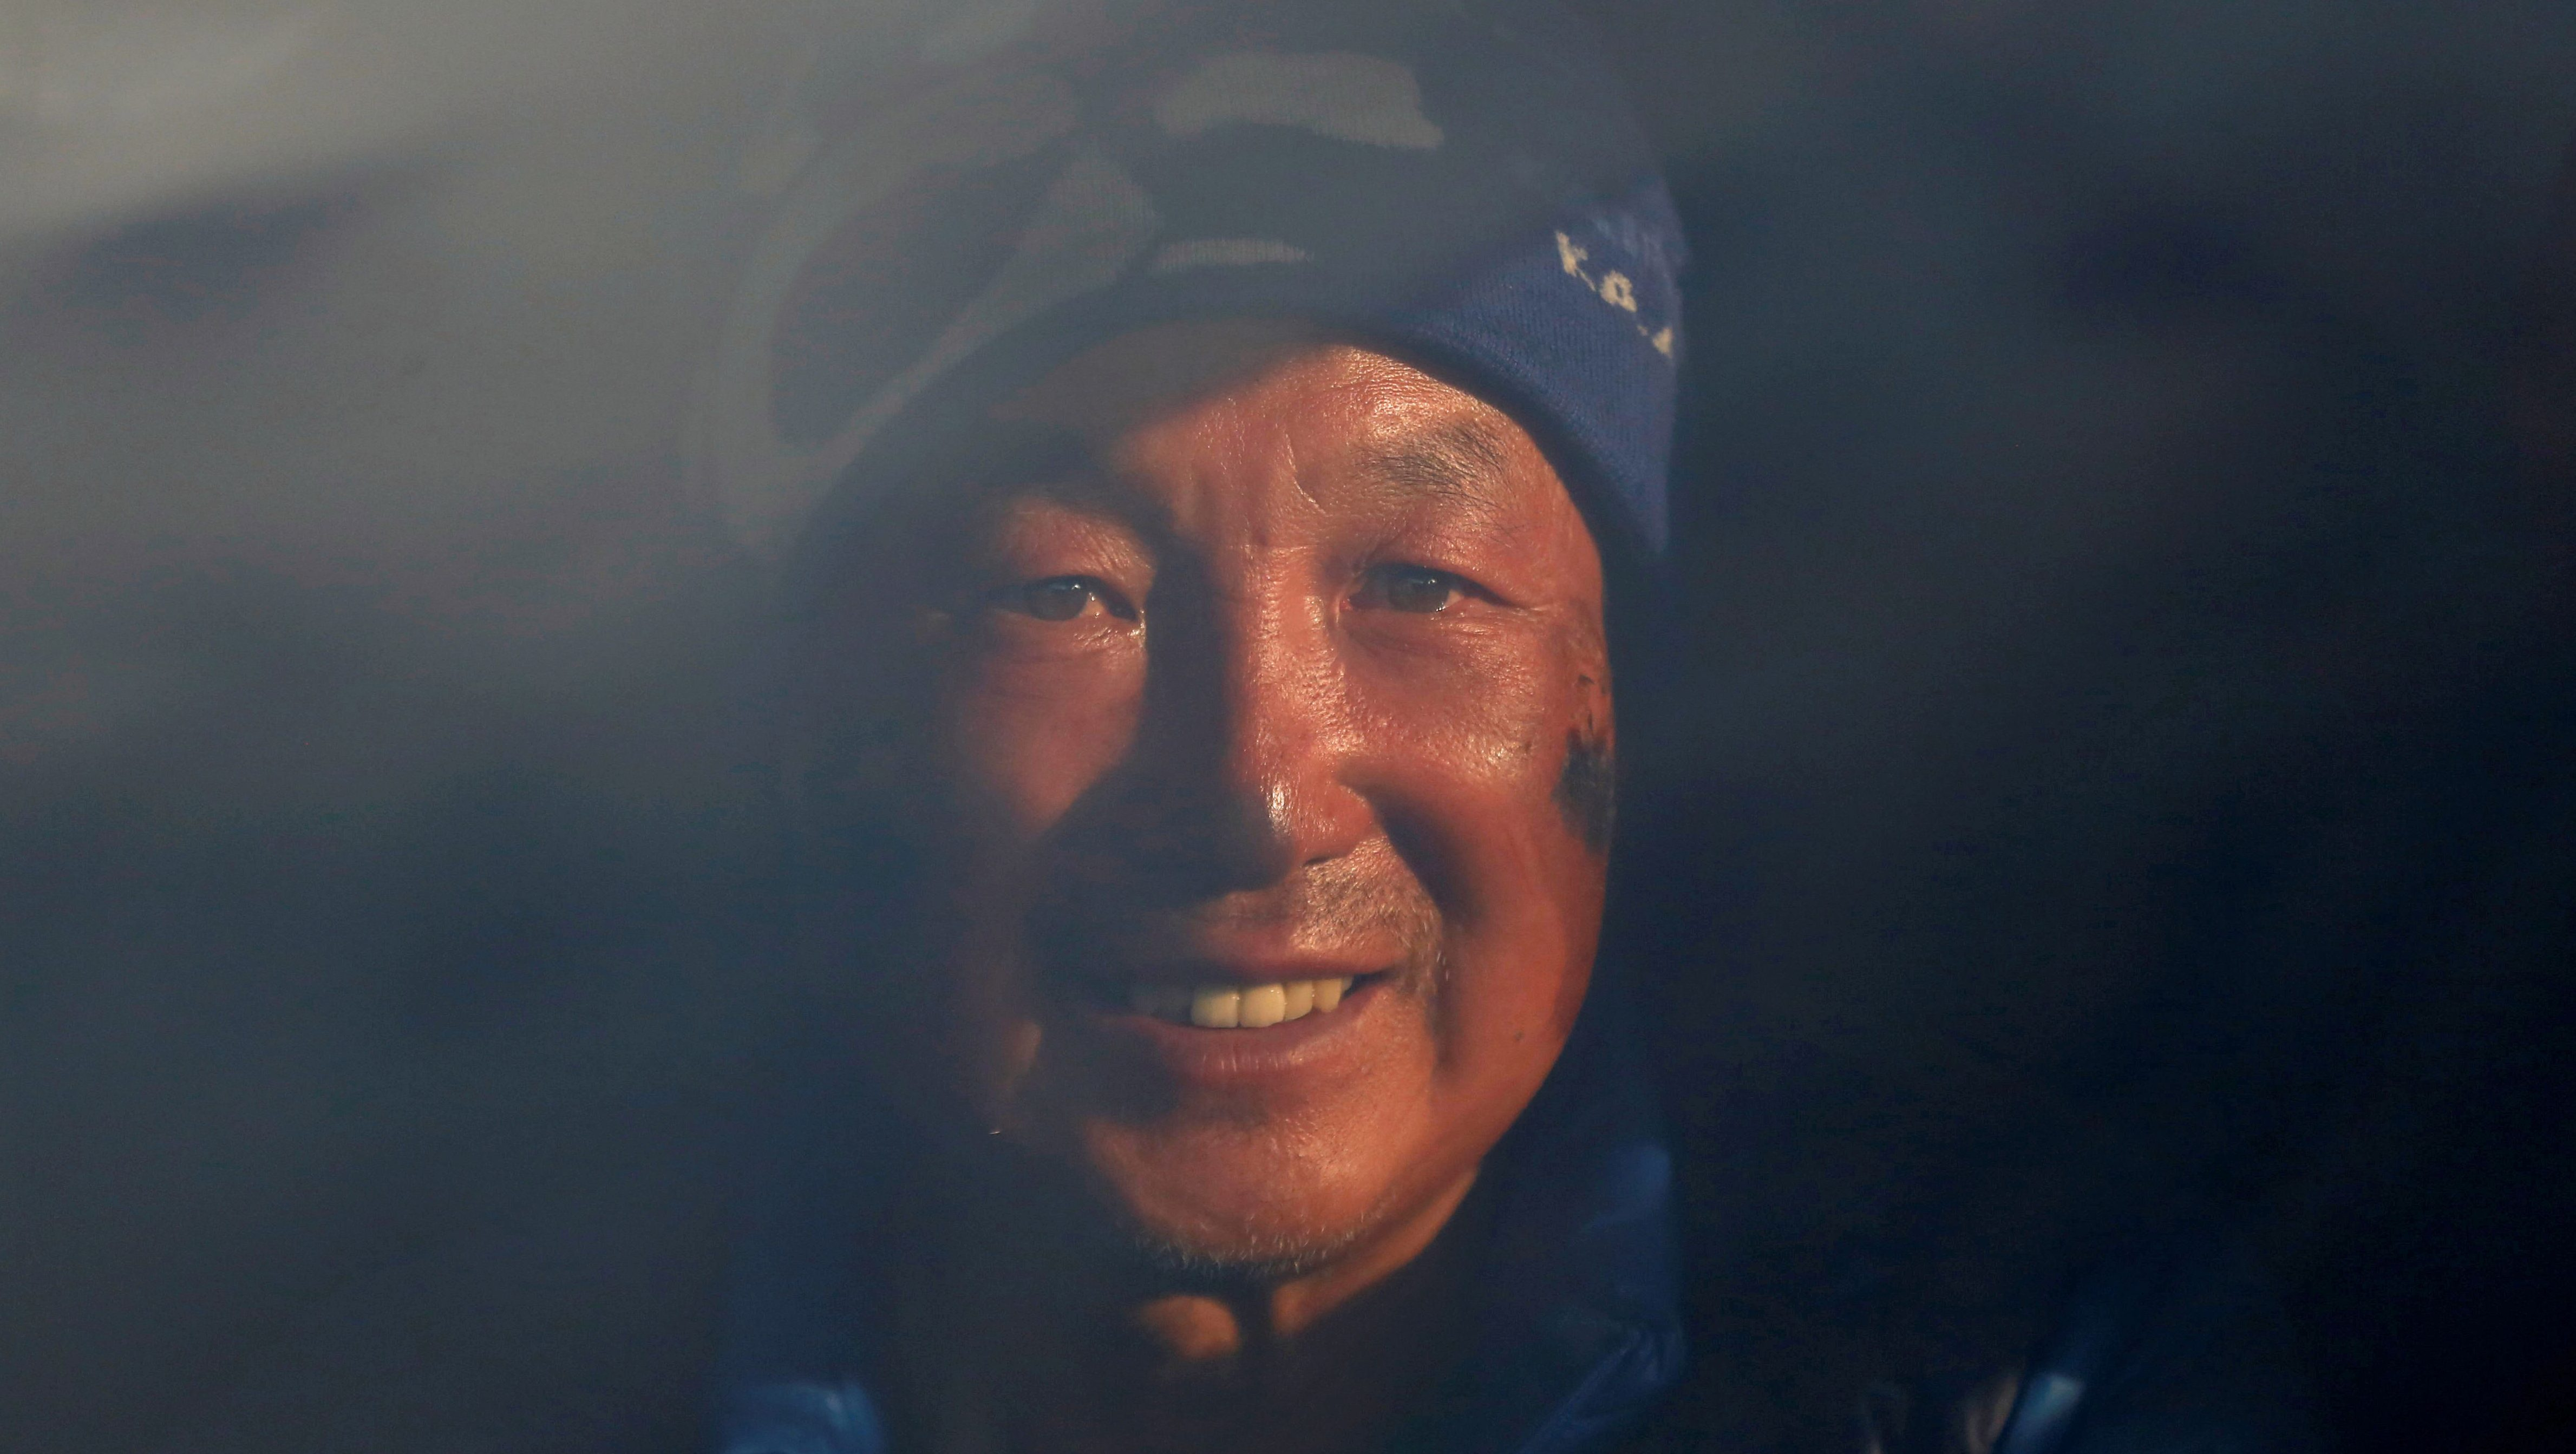 Xia Boyu, a Chinese double amputee climber, who lost both of his legs during his first attempt to climb Everest, smiles as he sits on an ambulance upon his arrival, after successfully climbing Mount Everest, in Kathmandu, Nepal May 16, 2018. REUTERS/Navesh Chitrakar TPX IMAGES OF THE DAY - RC1E790B1E80